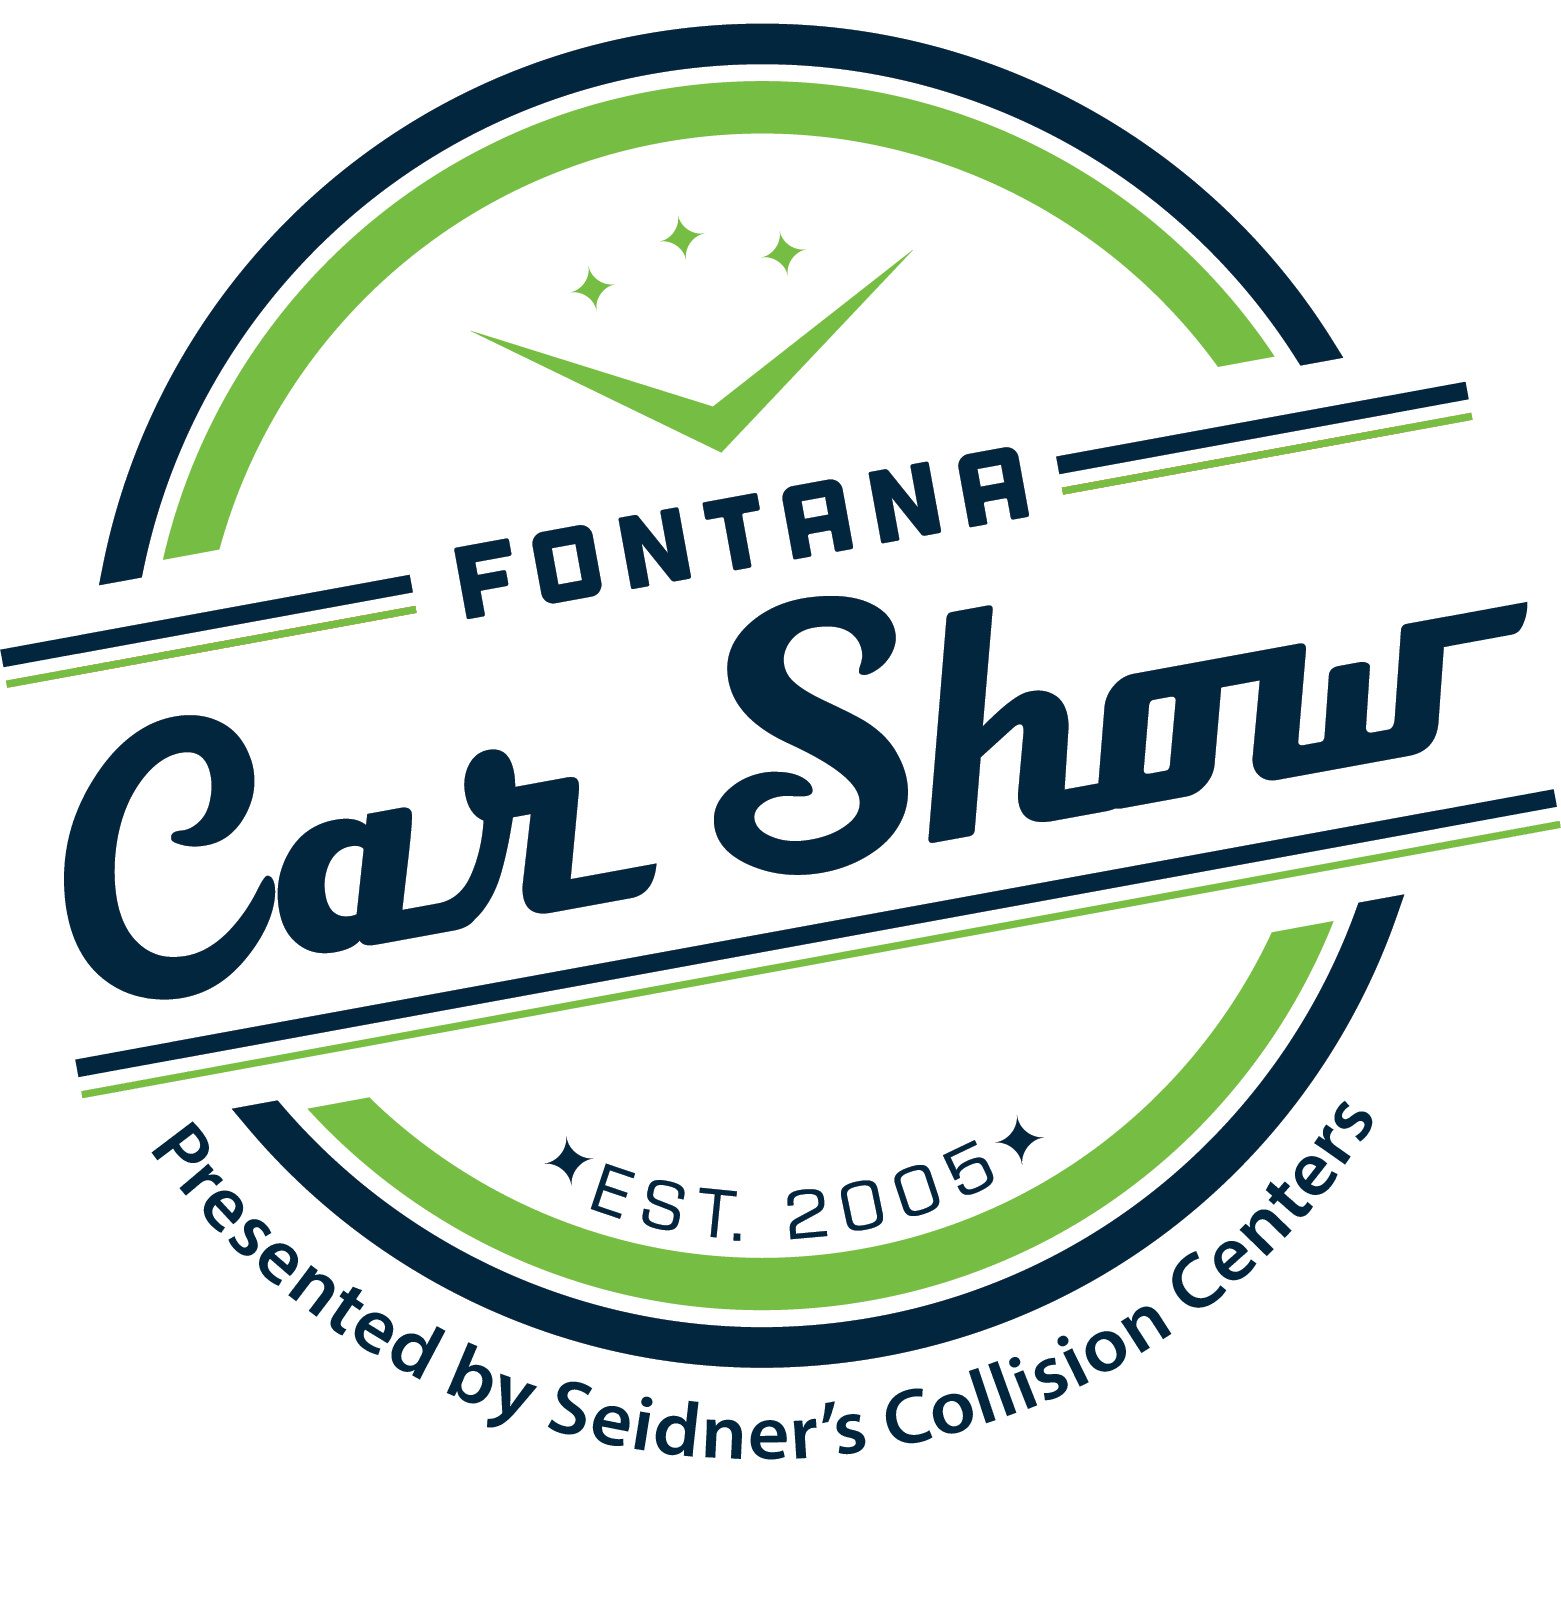 Car Show Logo  Opens in new window